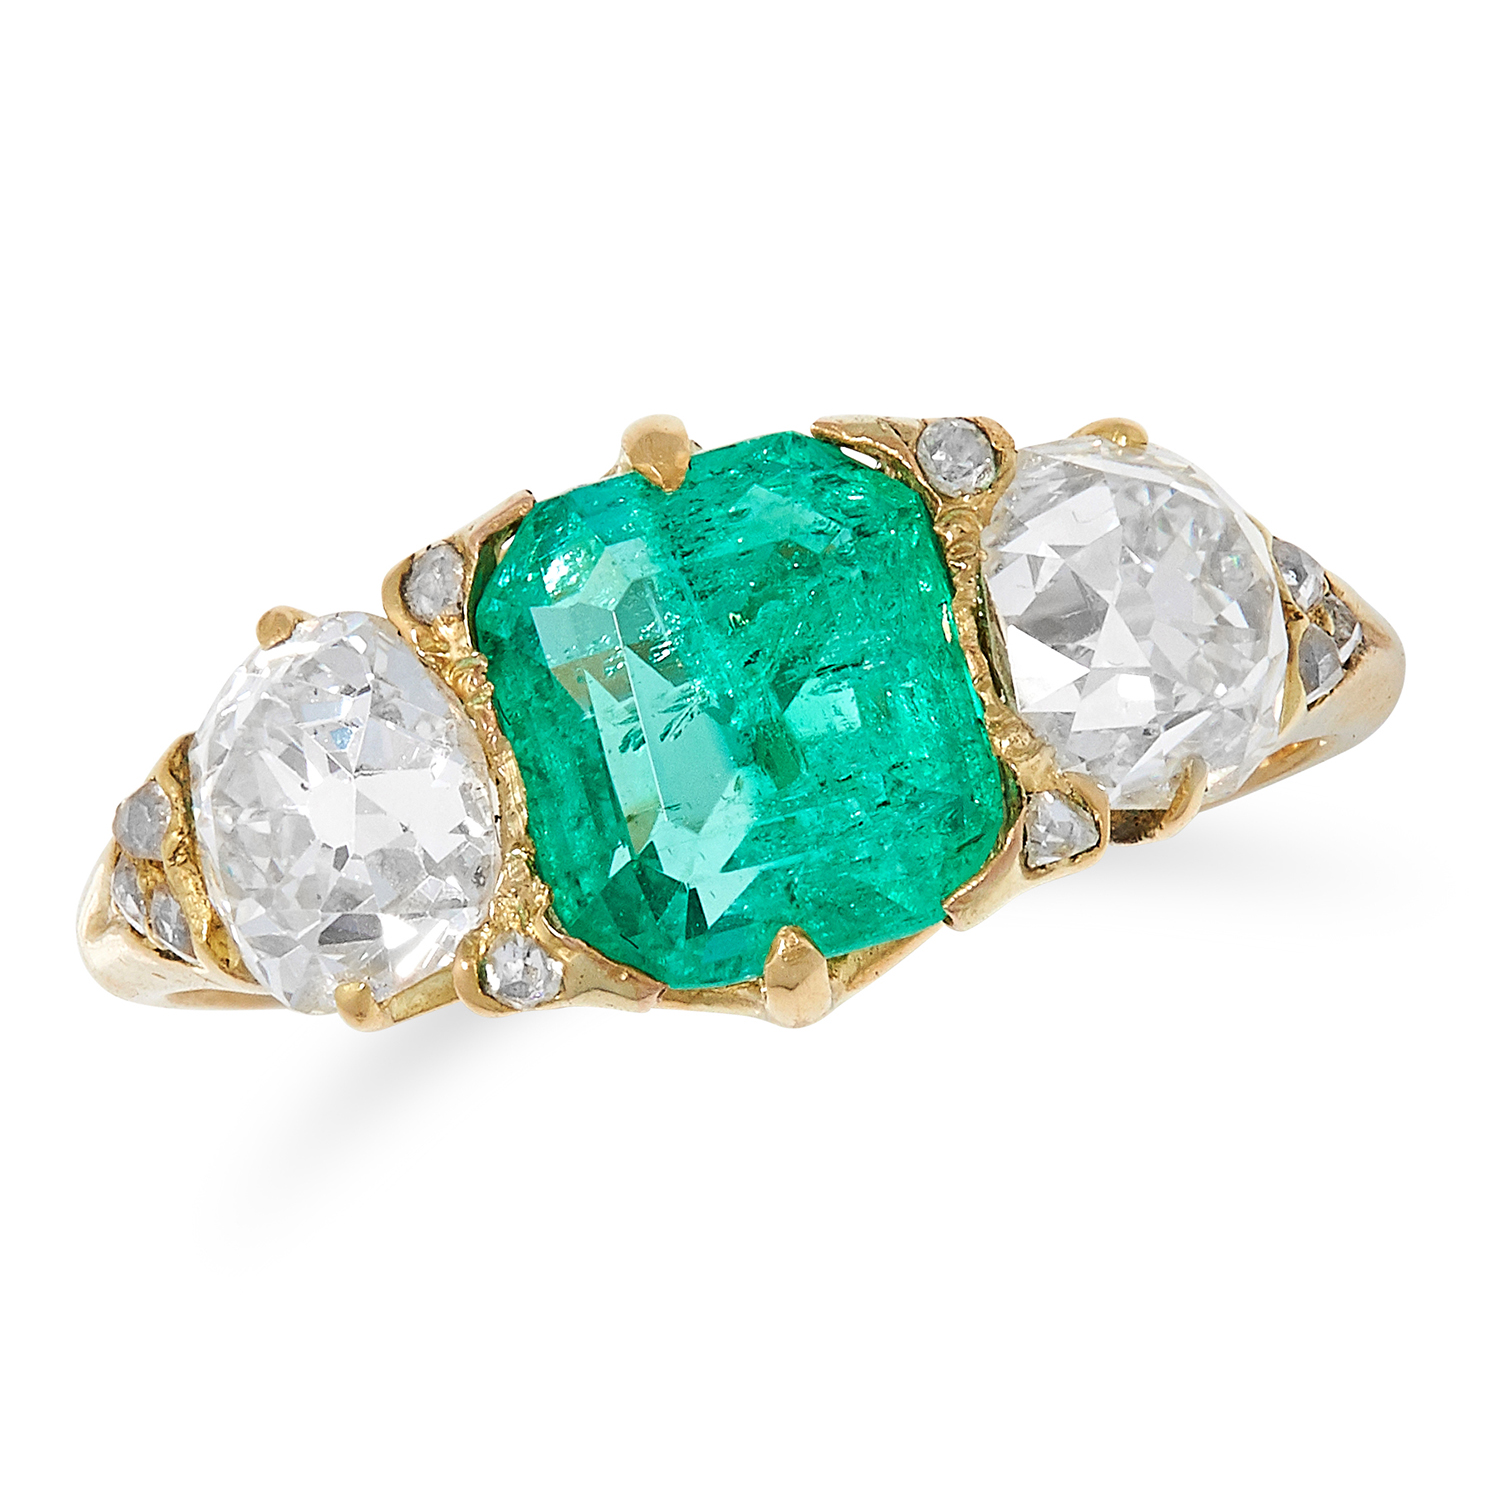 Los 24 - 1.71 CARAT COLOMBIAN EMERALD AND DIAMOND THREE STONE RING set with an emerald cut emerald of 2.72